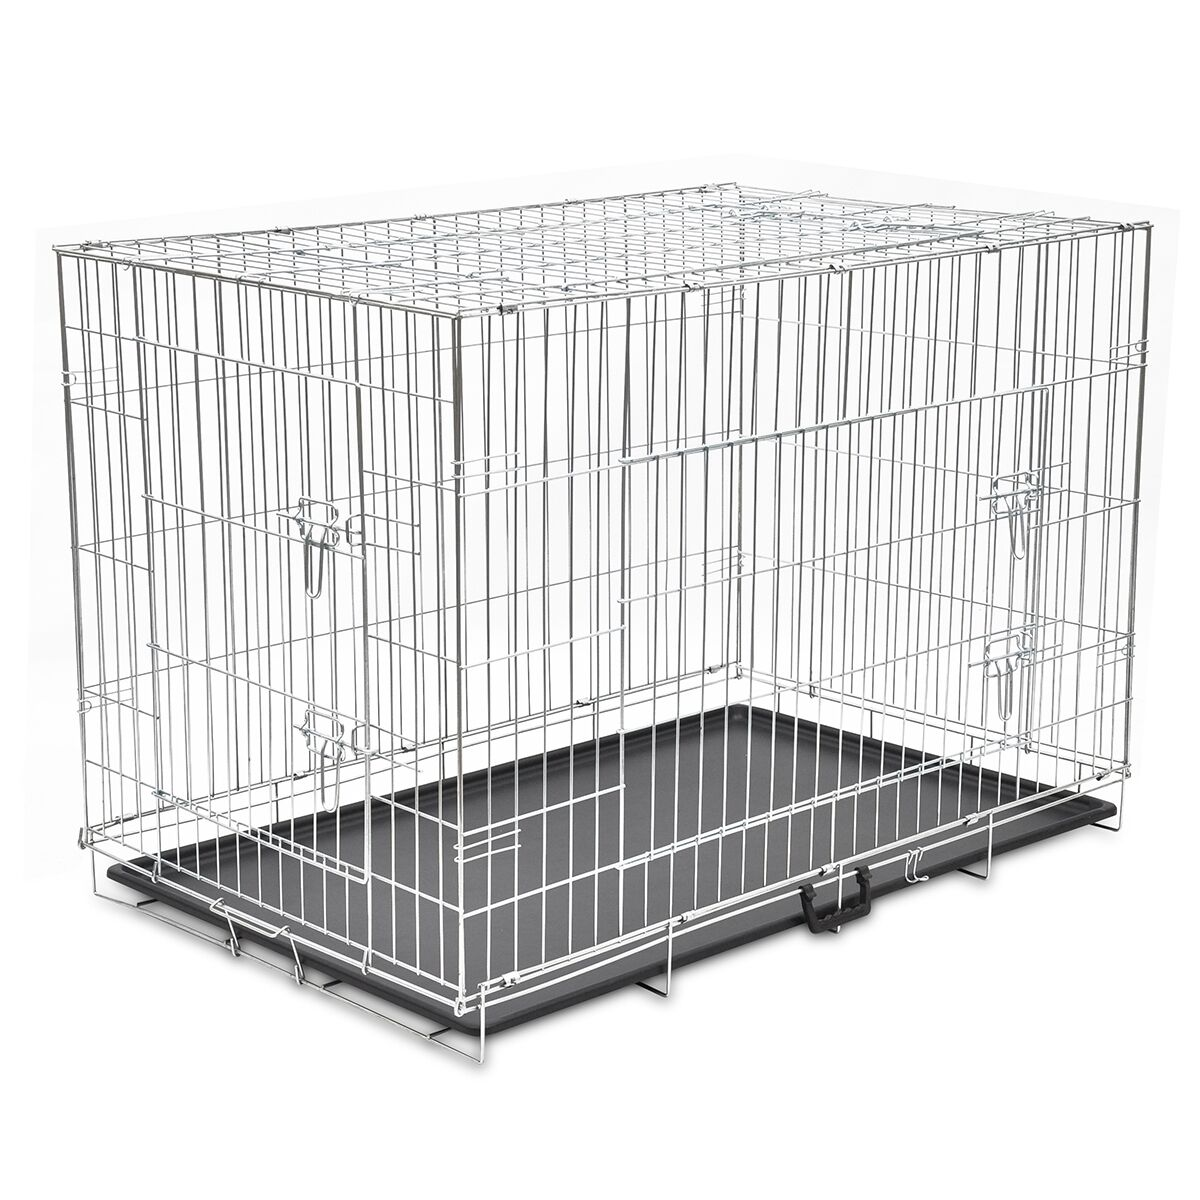 48 xxl dog cage crate pet kennel puppy cat rabbit metal. Black Bedroom Furniture Sets. Home Design Ideas